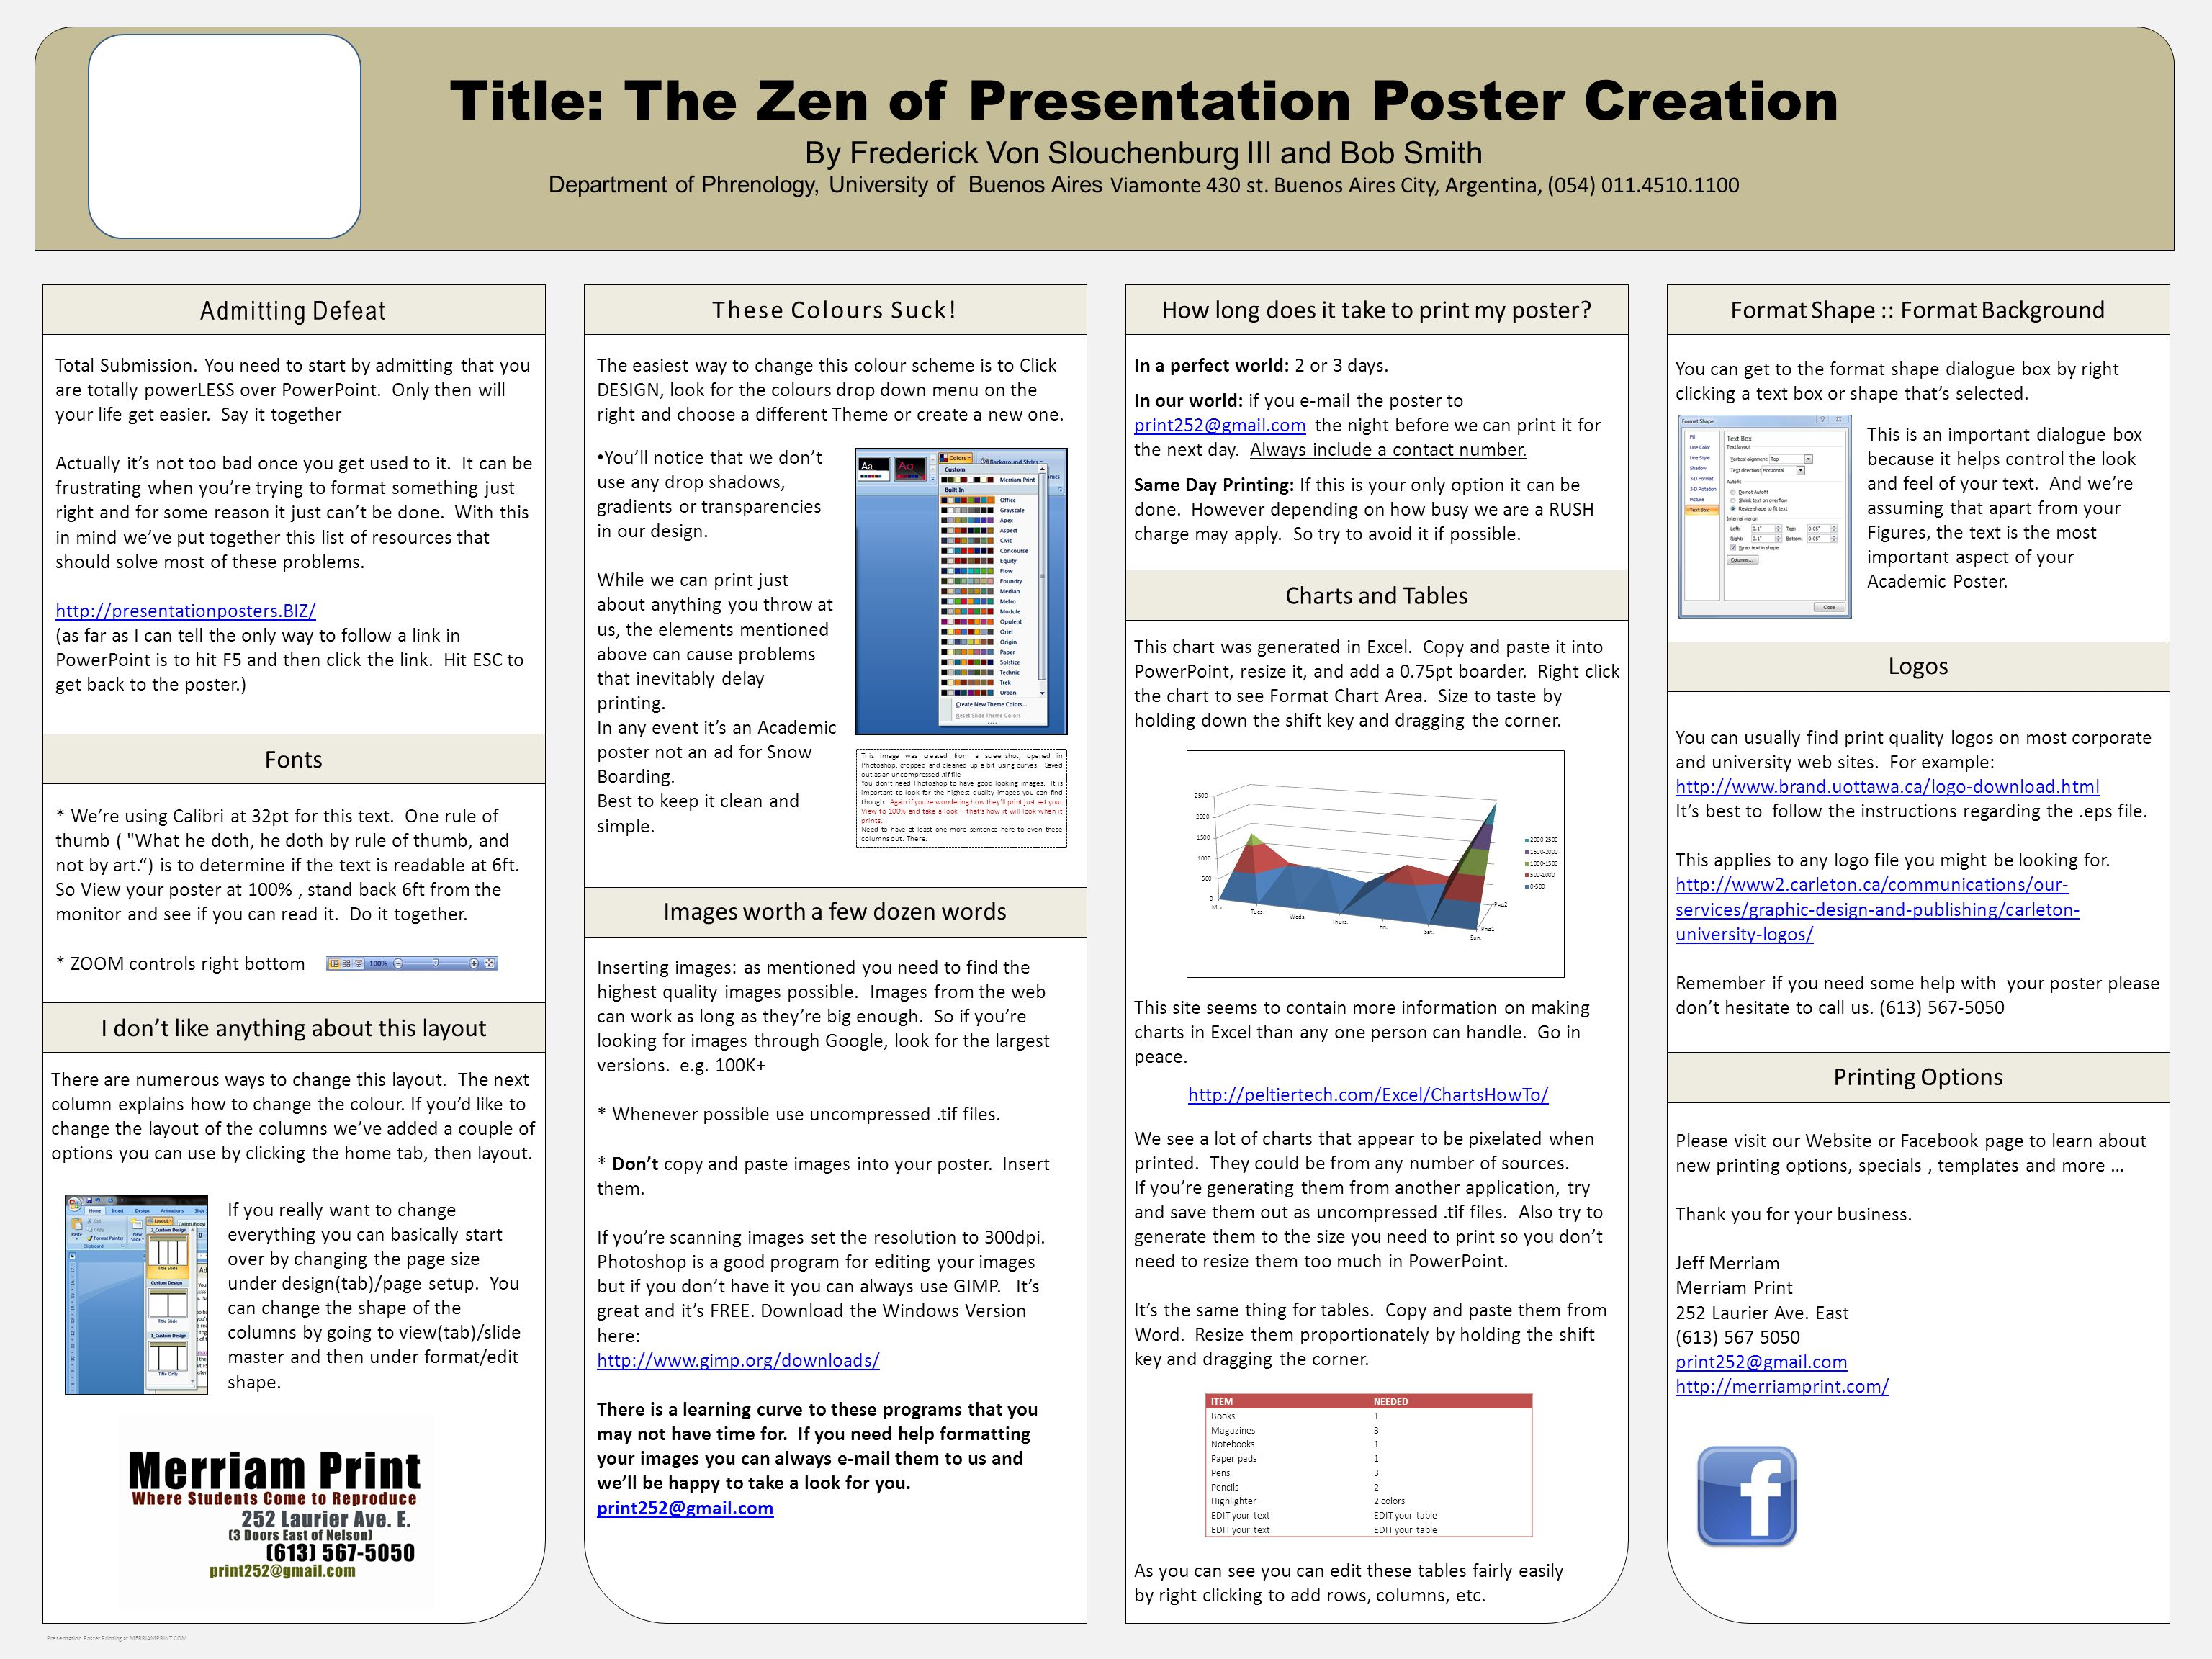 Title: The Zen of Presentation Poster Creation